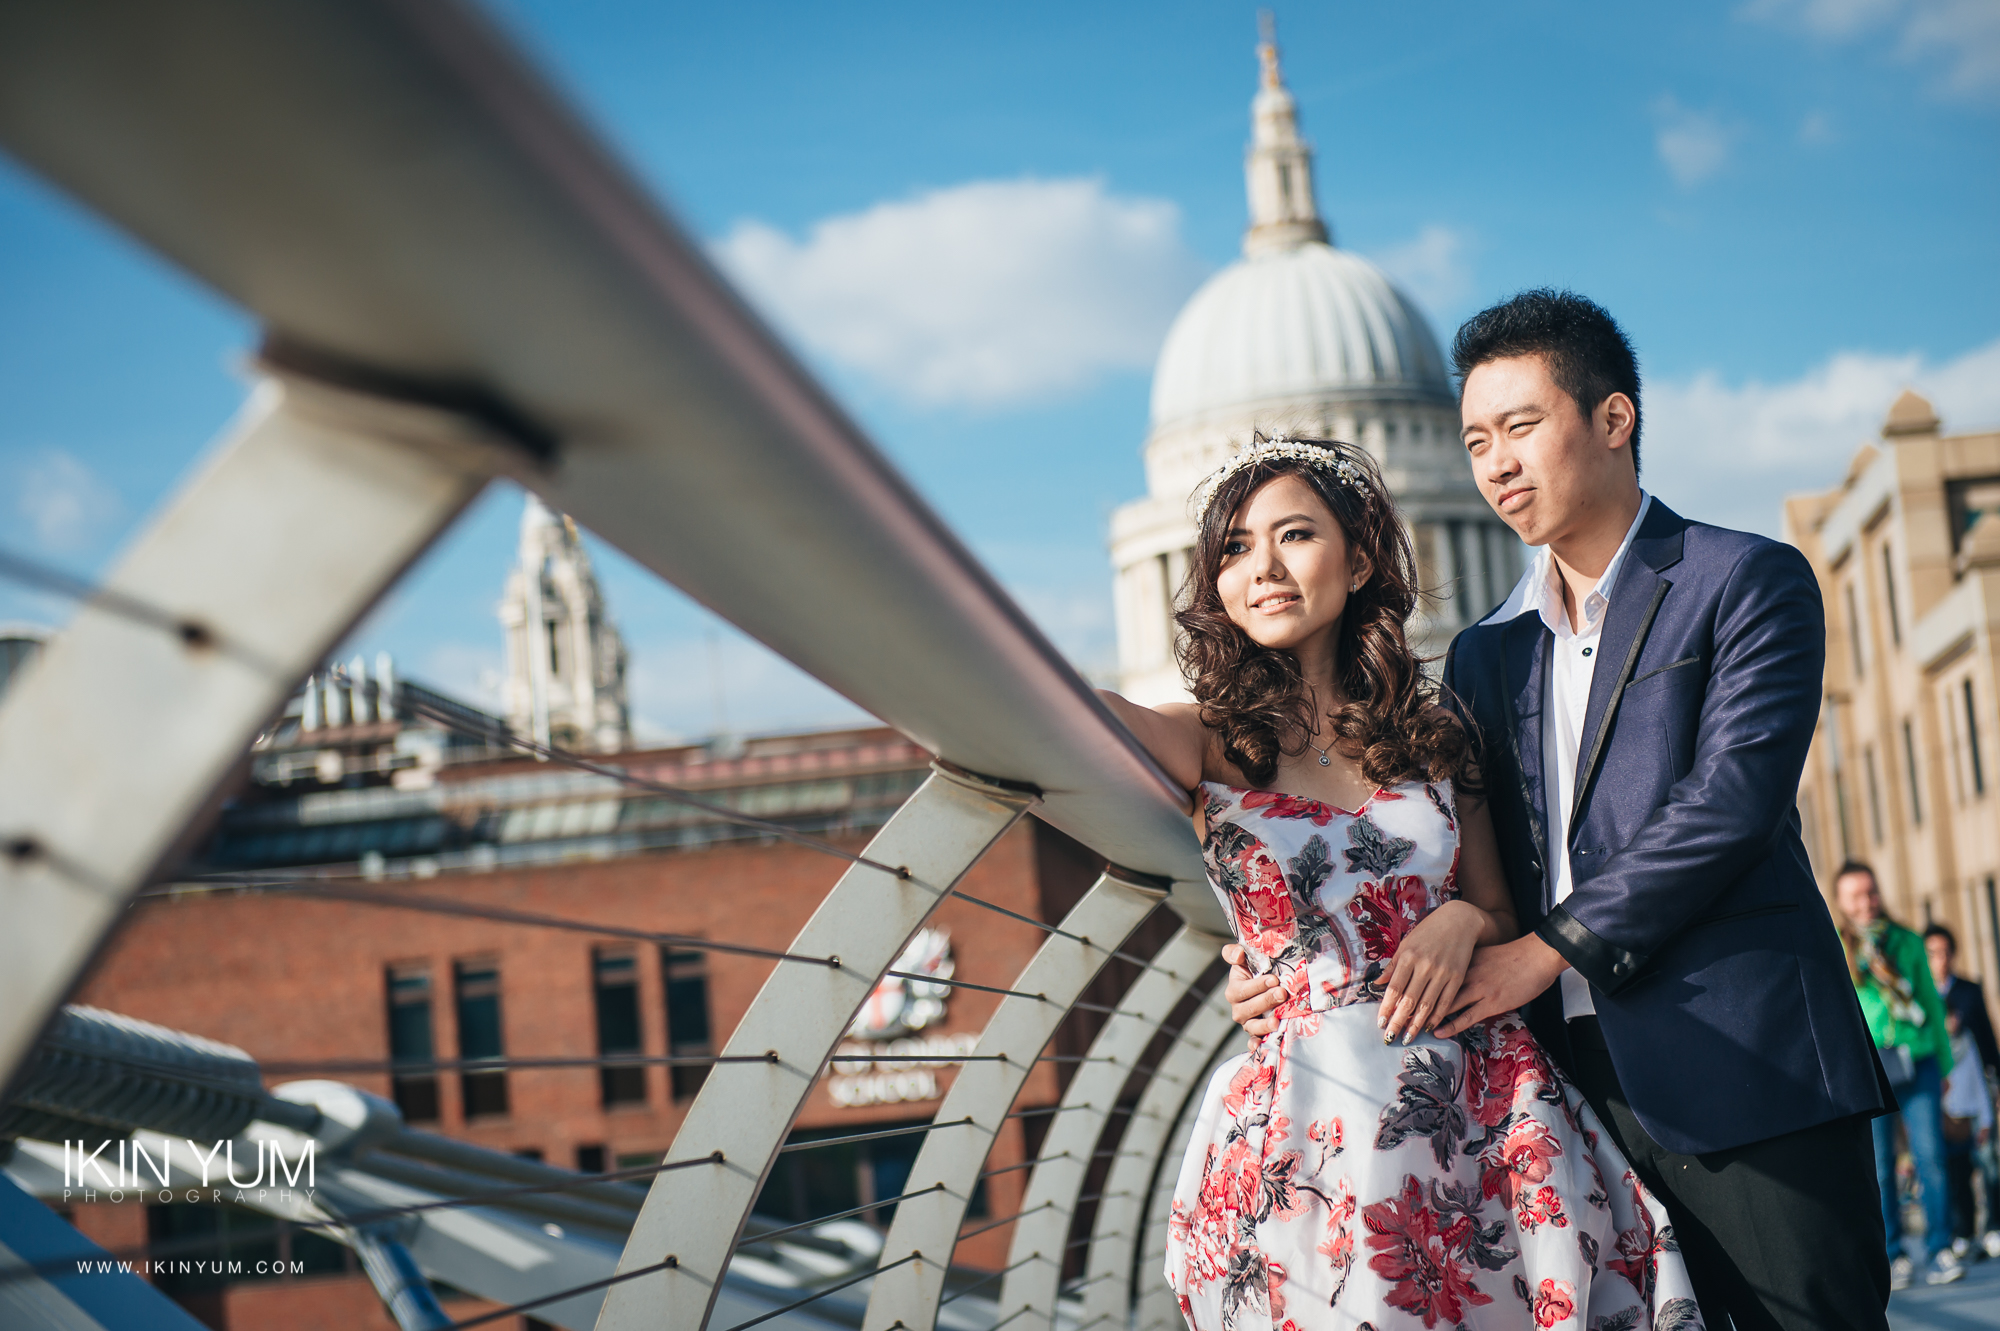 Pre-Wedding Shoot London Susan + Alvin - Ikin Yum Photography-002.jpg